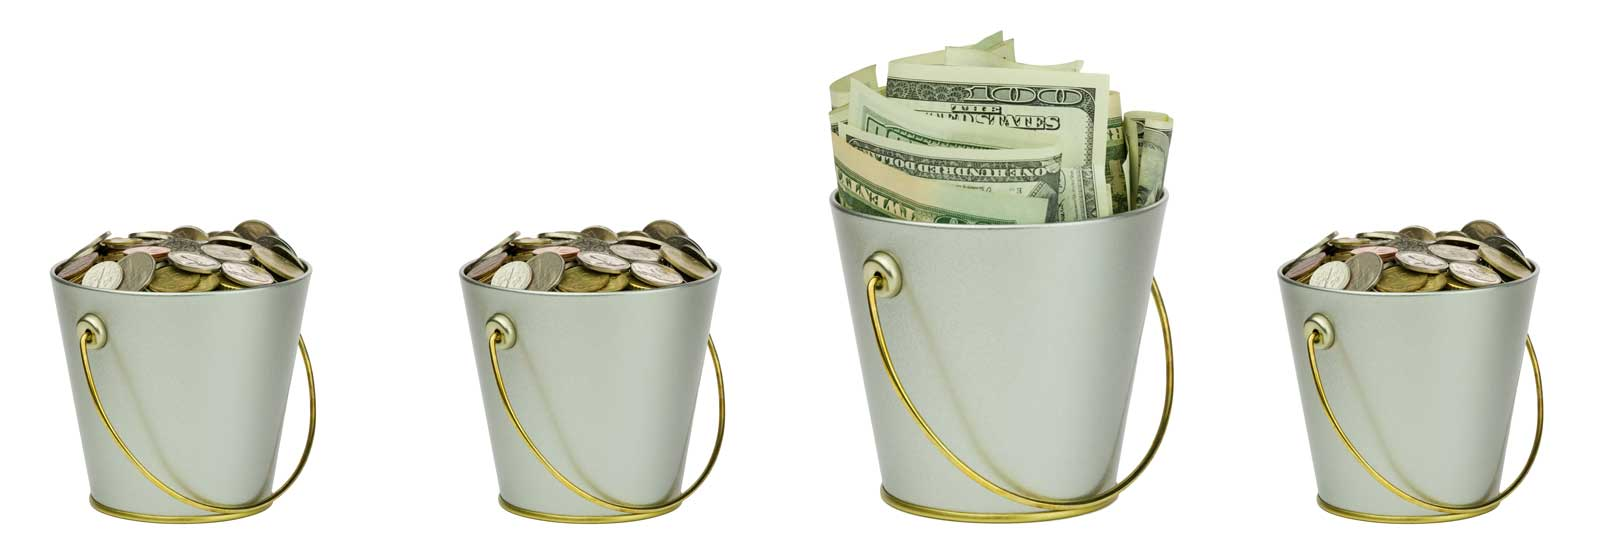 Save More with Money Buckets